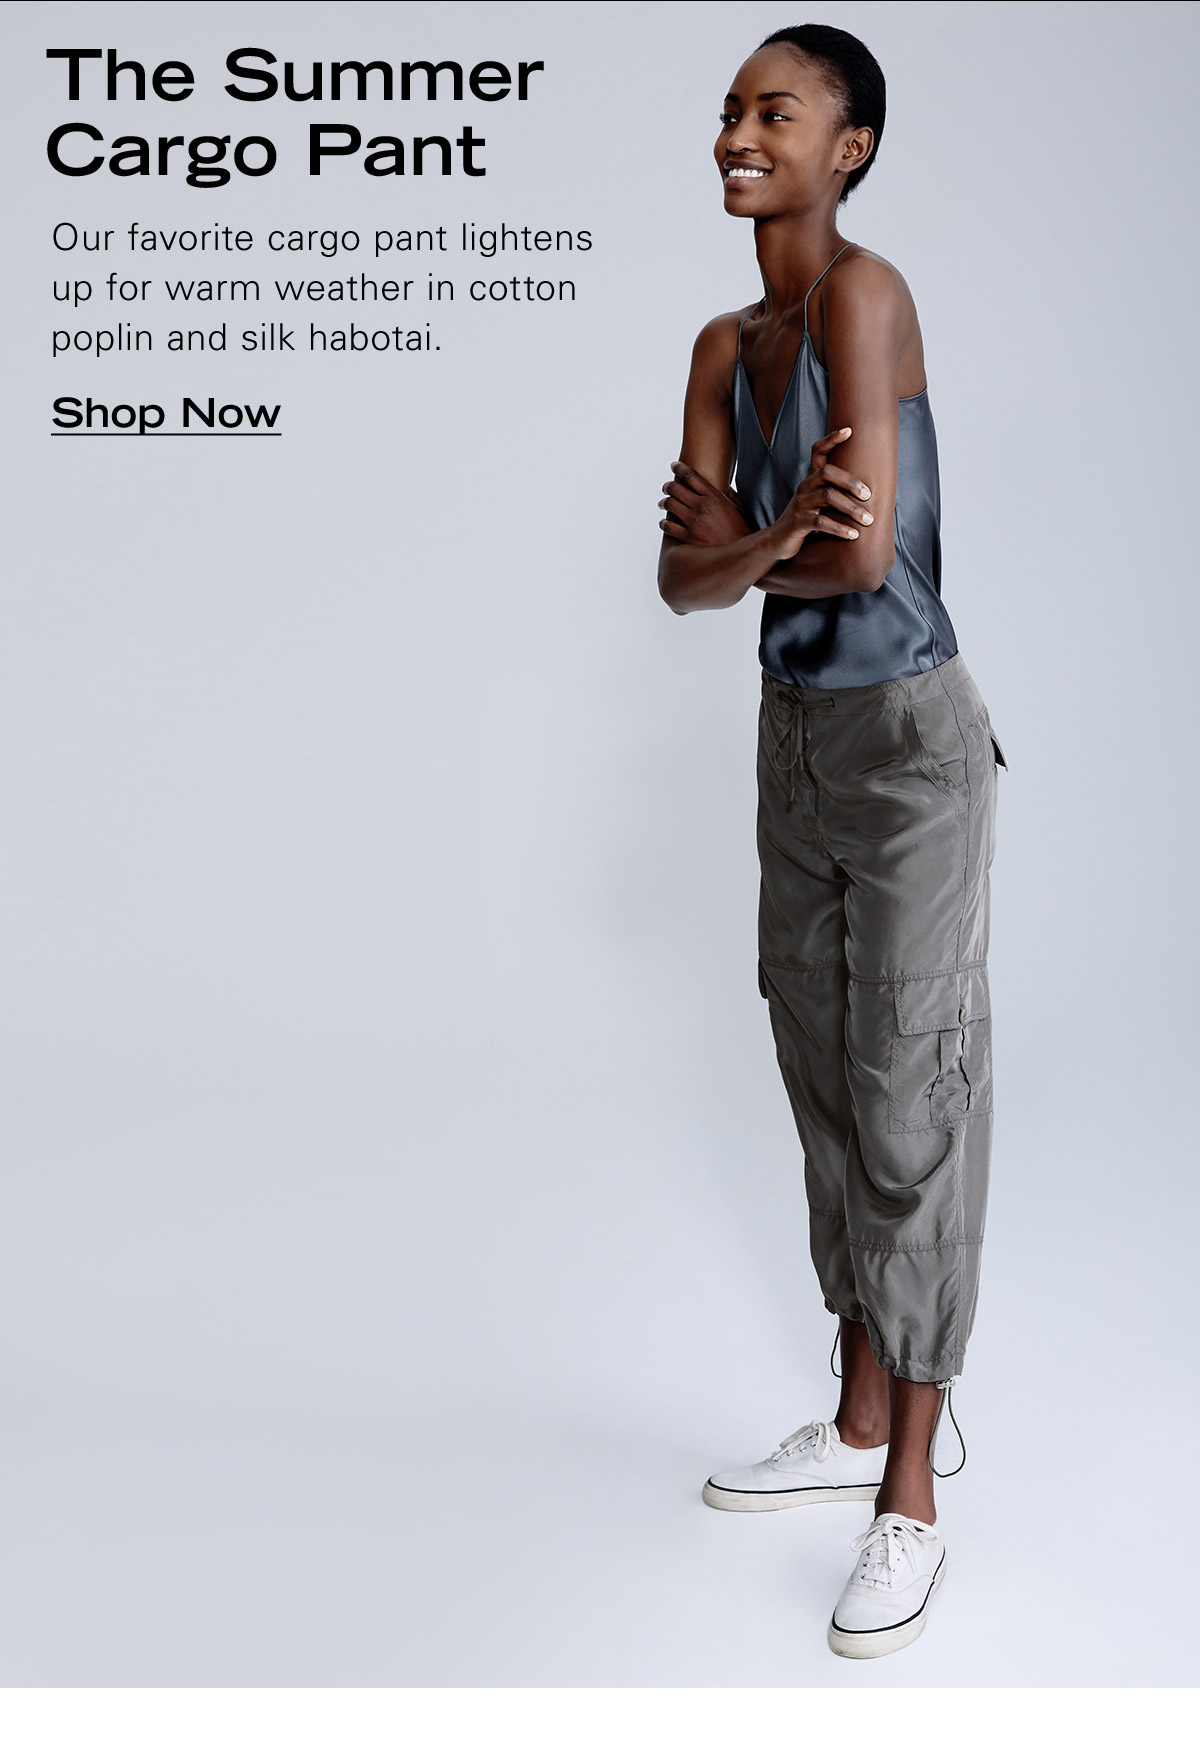 The Summer Cargo Pant. Our favorite cargo pant lightens up for warm weather in cotton poplin and silk habotai.